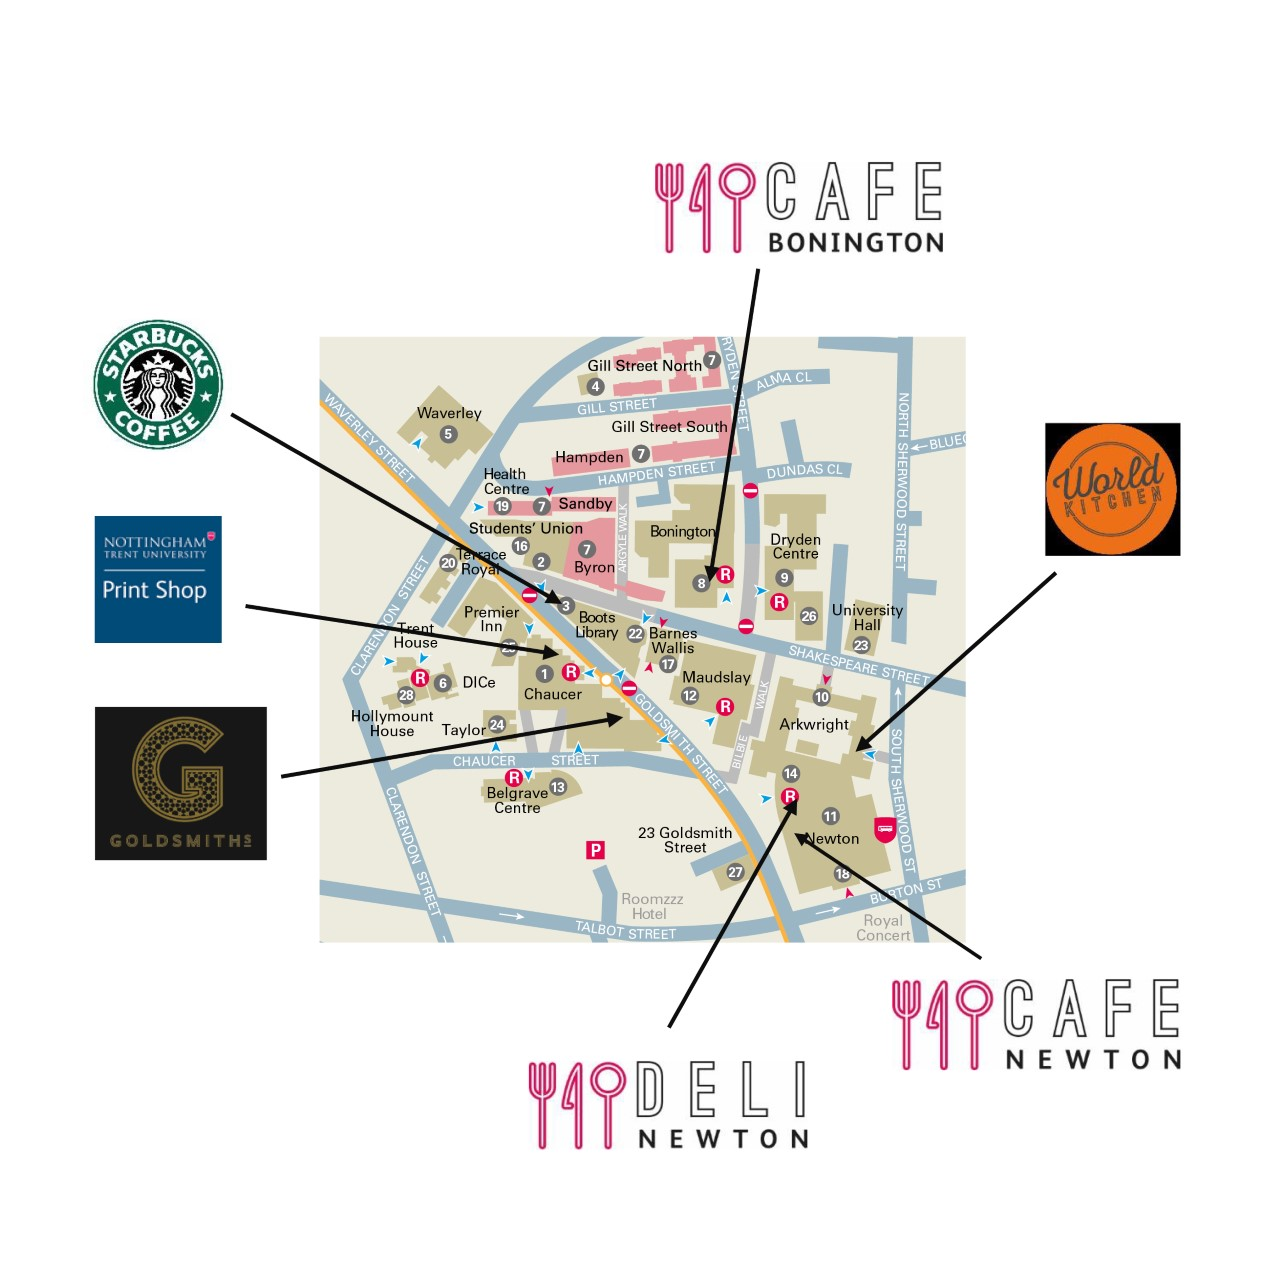 Map showing the locations of food outlets at City Campus